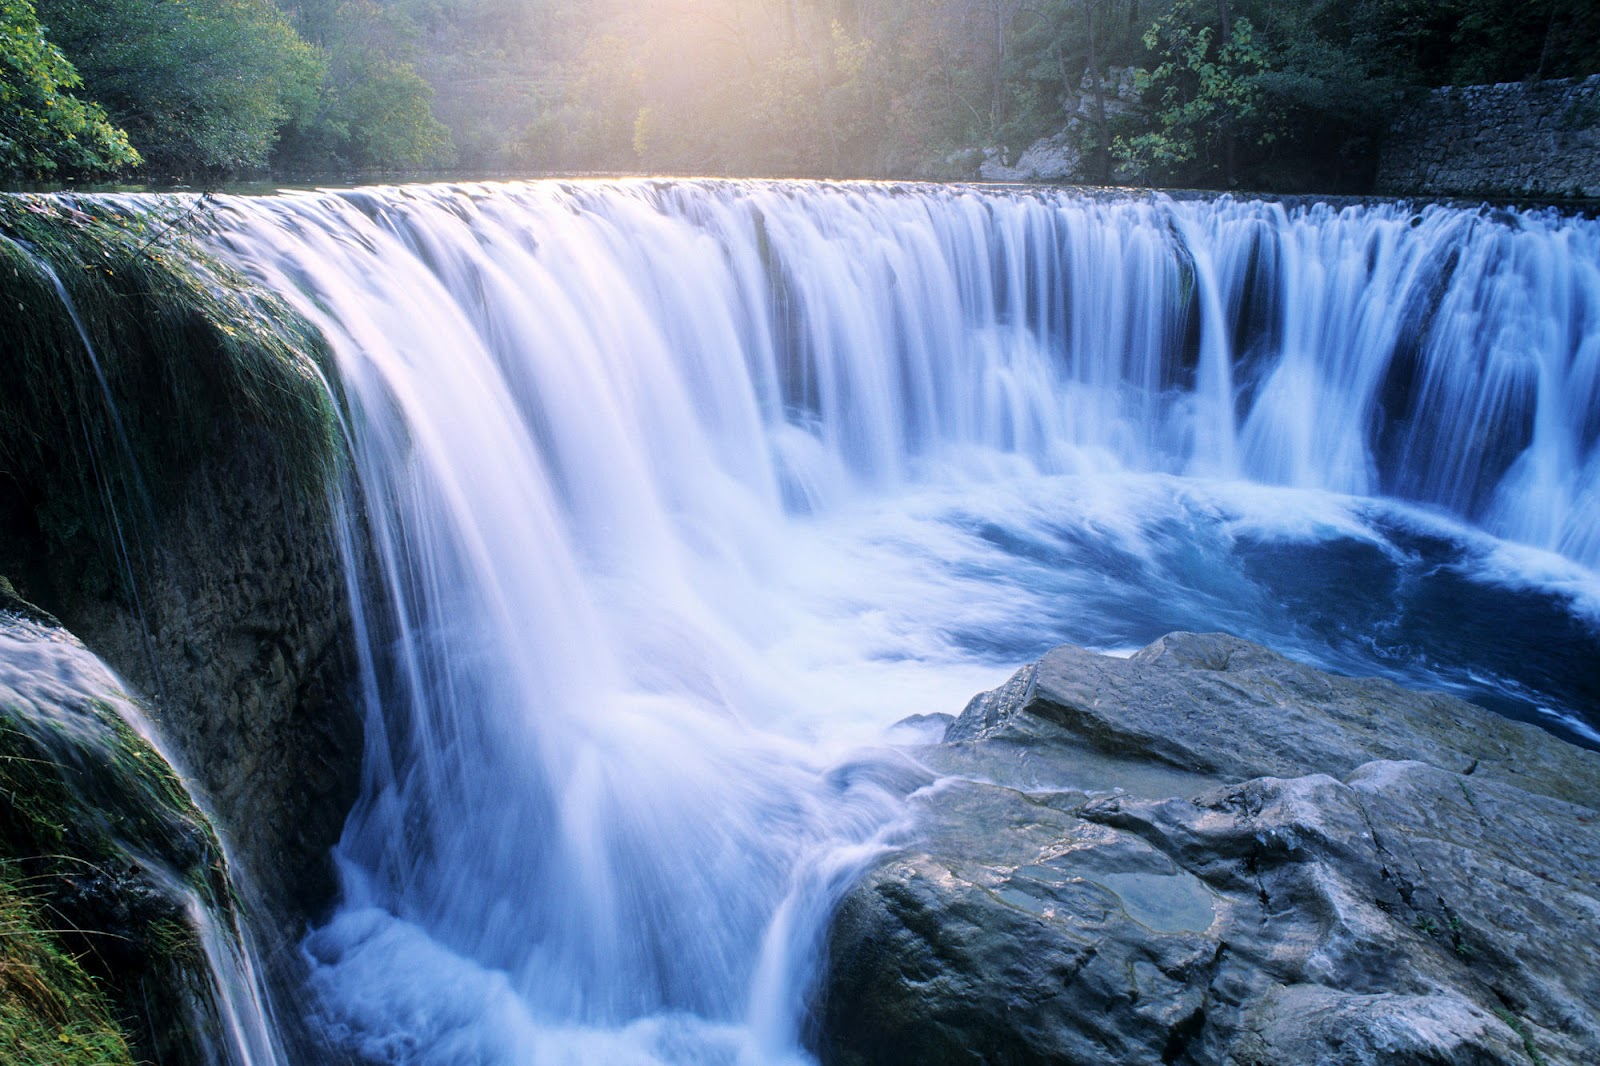 Hd Waterfall Backgrounds: A Wallpapers Home: Hd Wallpapers Of Waterfalls